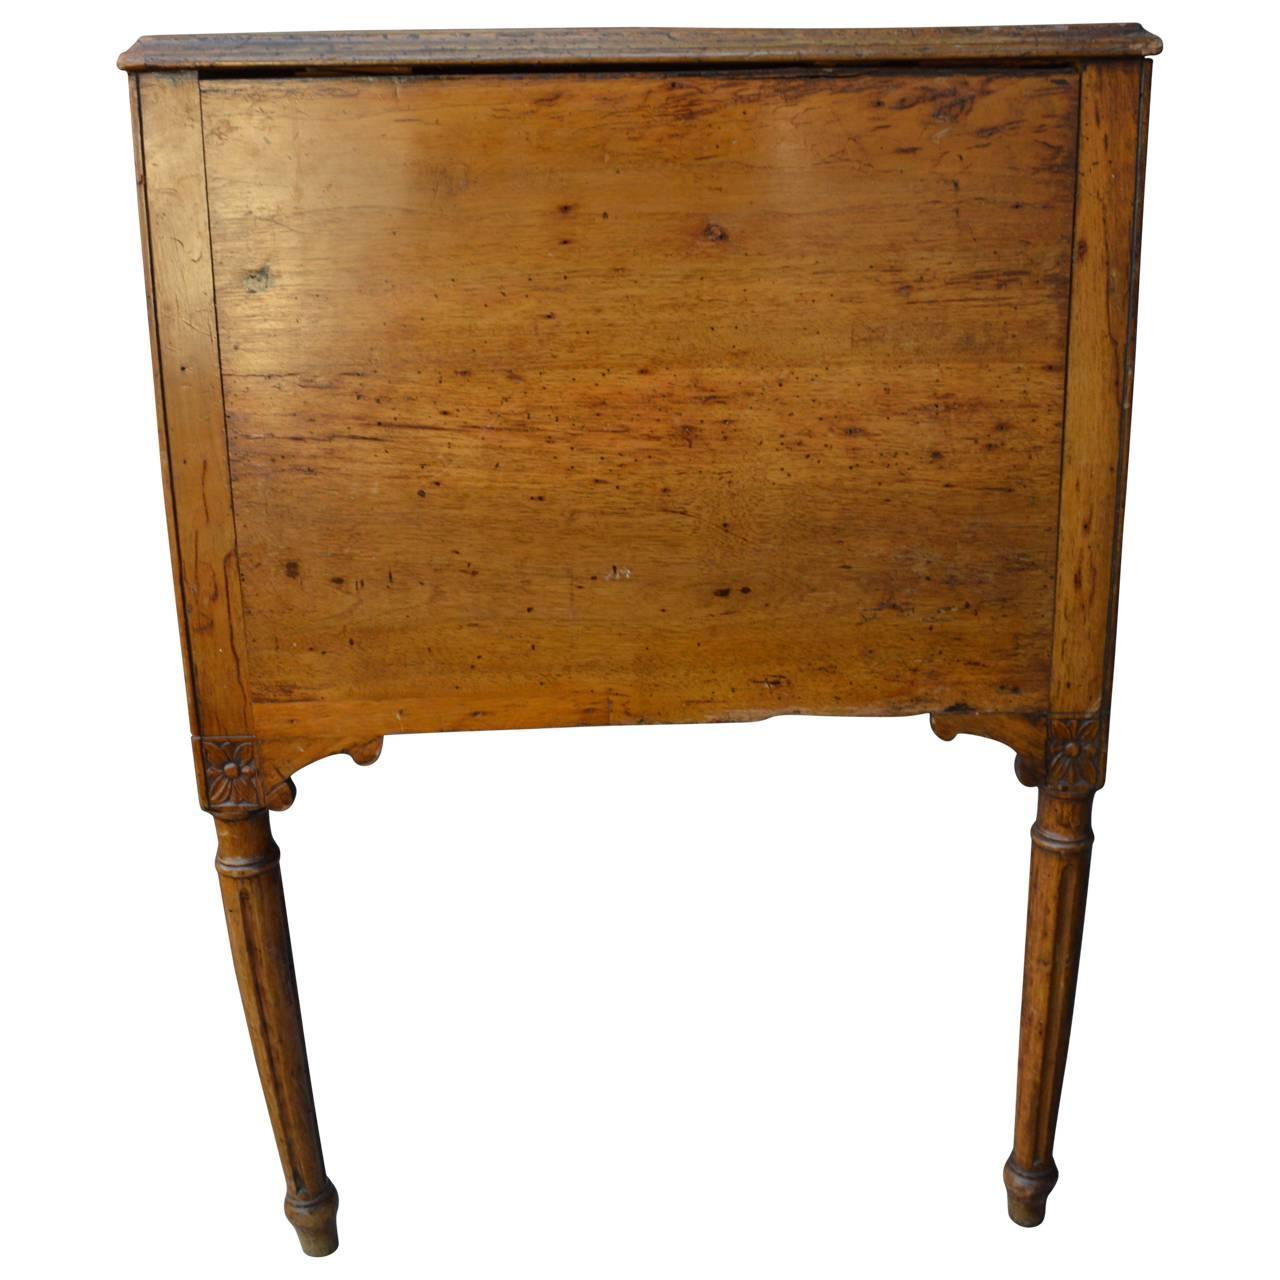 #7C4714 Antique Italian Writing Desk At 1stdibs with 1280x1280 px of Best Vintage Writing Desks 12801280 image @ avoidforclosure.info